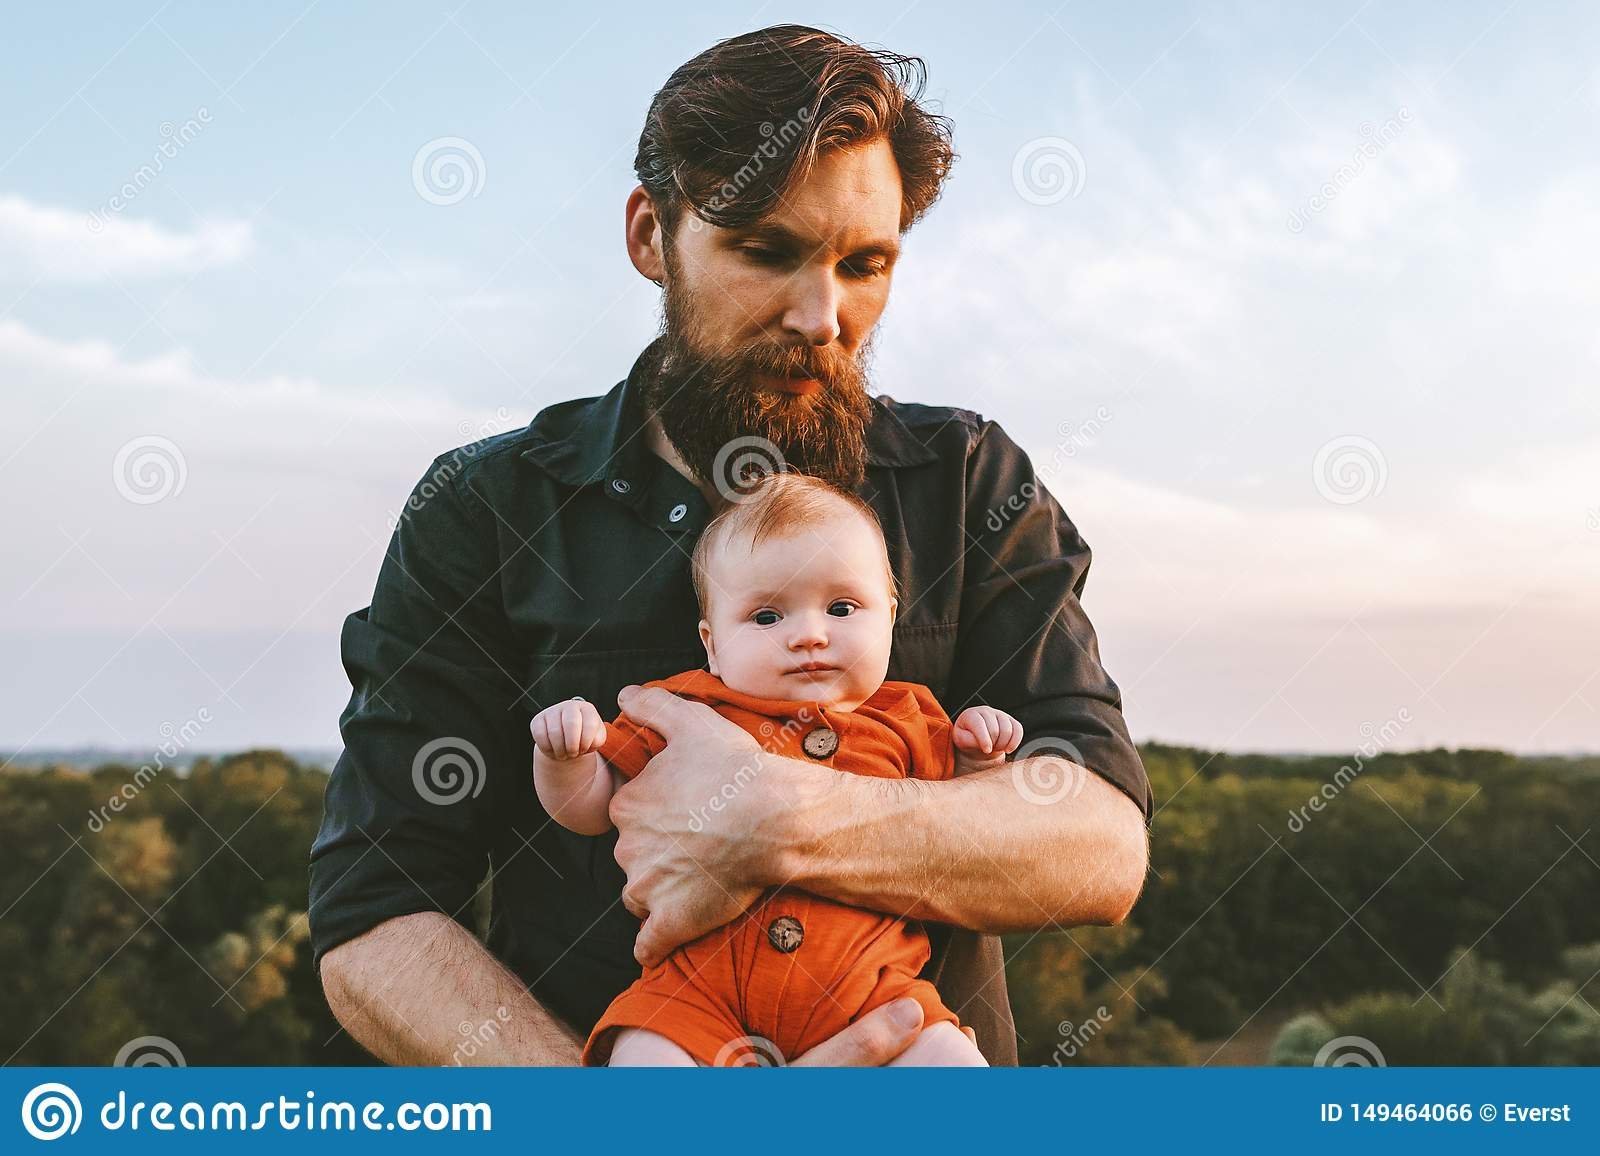 Father holding infant baby walking together outdoor